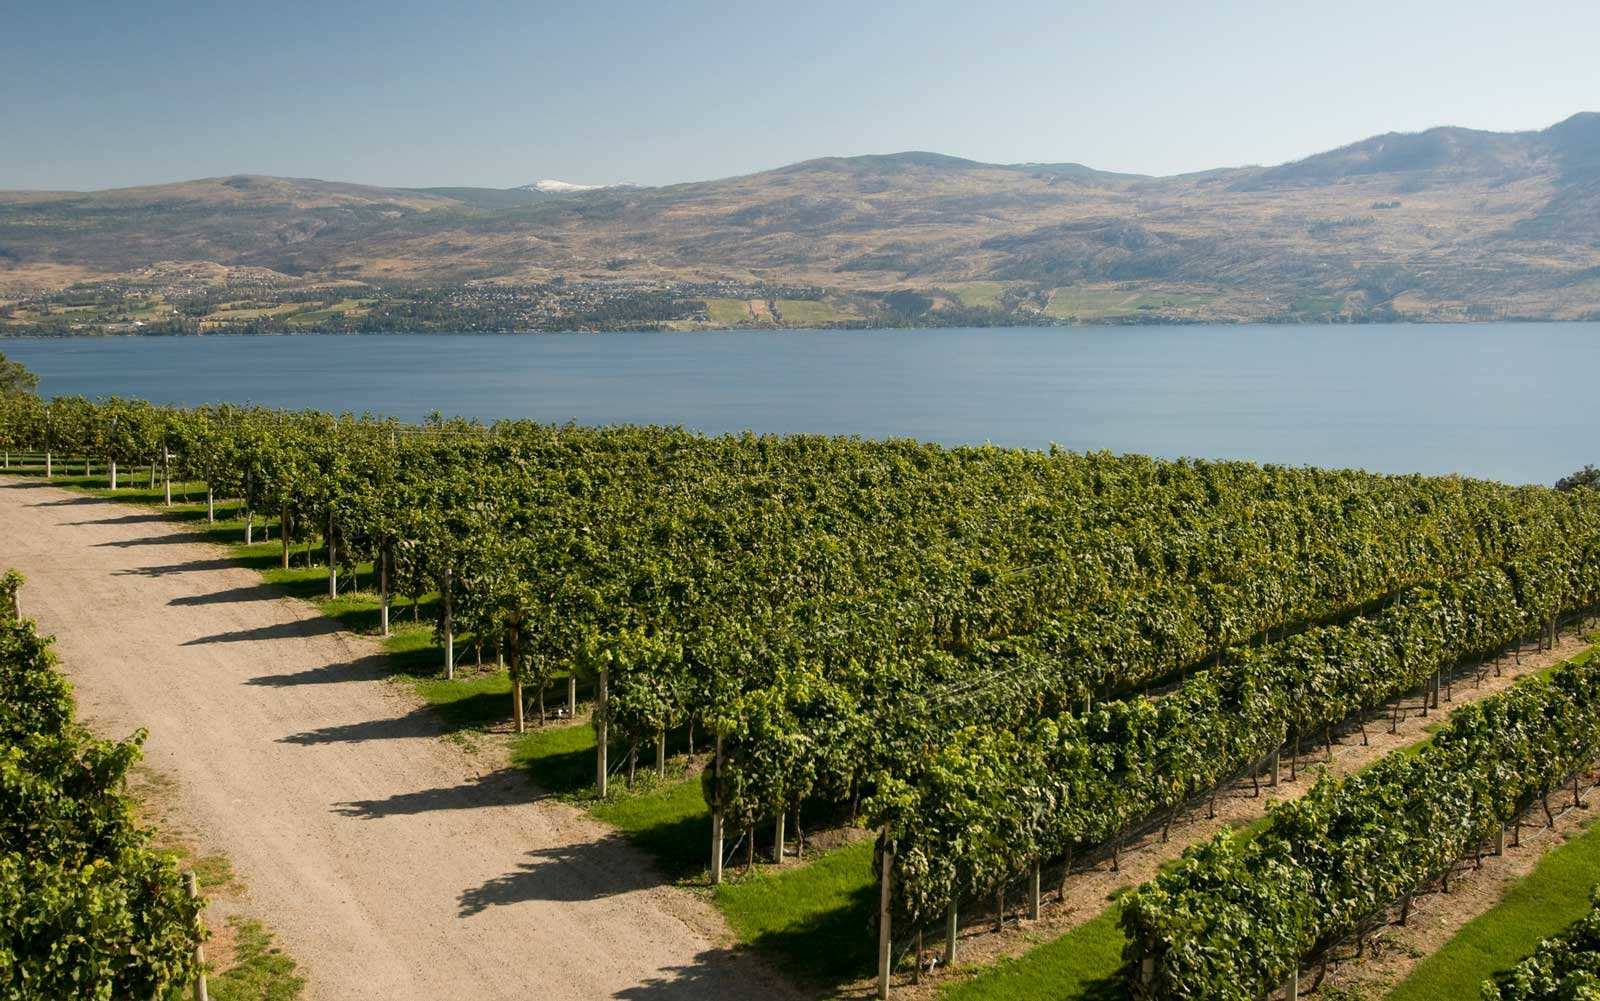 Mission Hill Winery in the Okanagan Valley, Canada's leading wine producing region in British Columbia